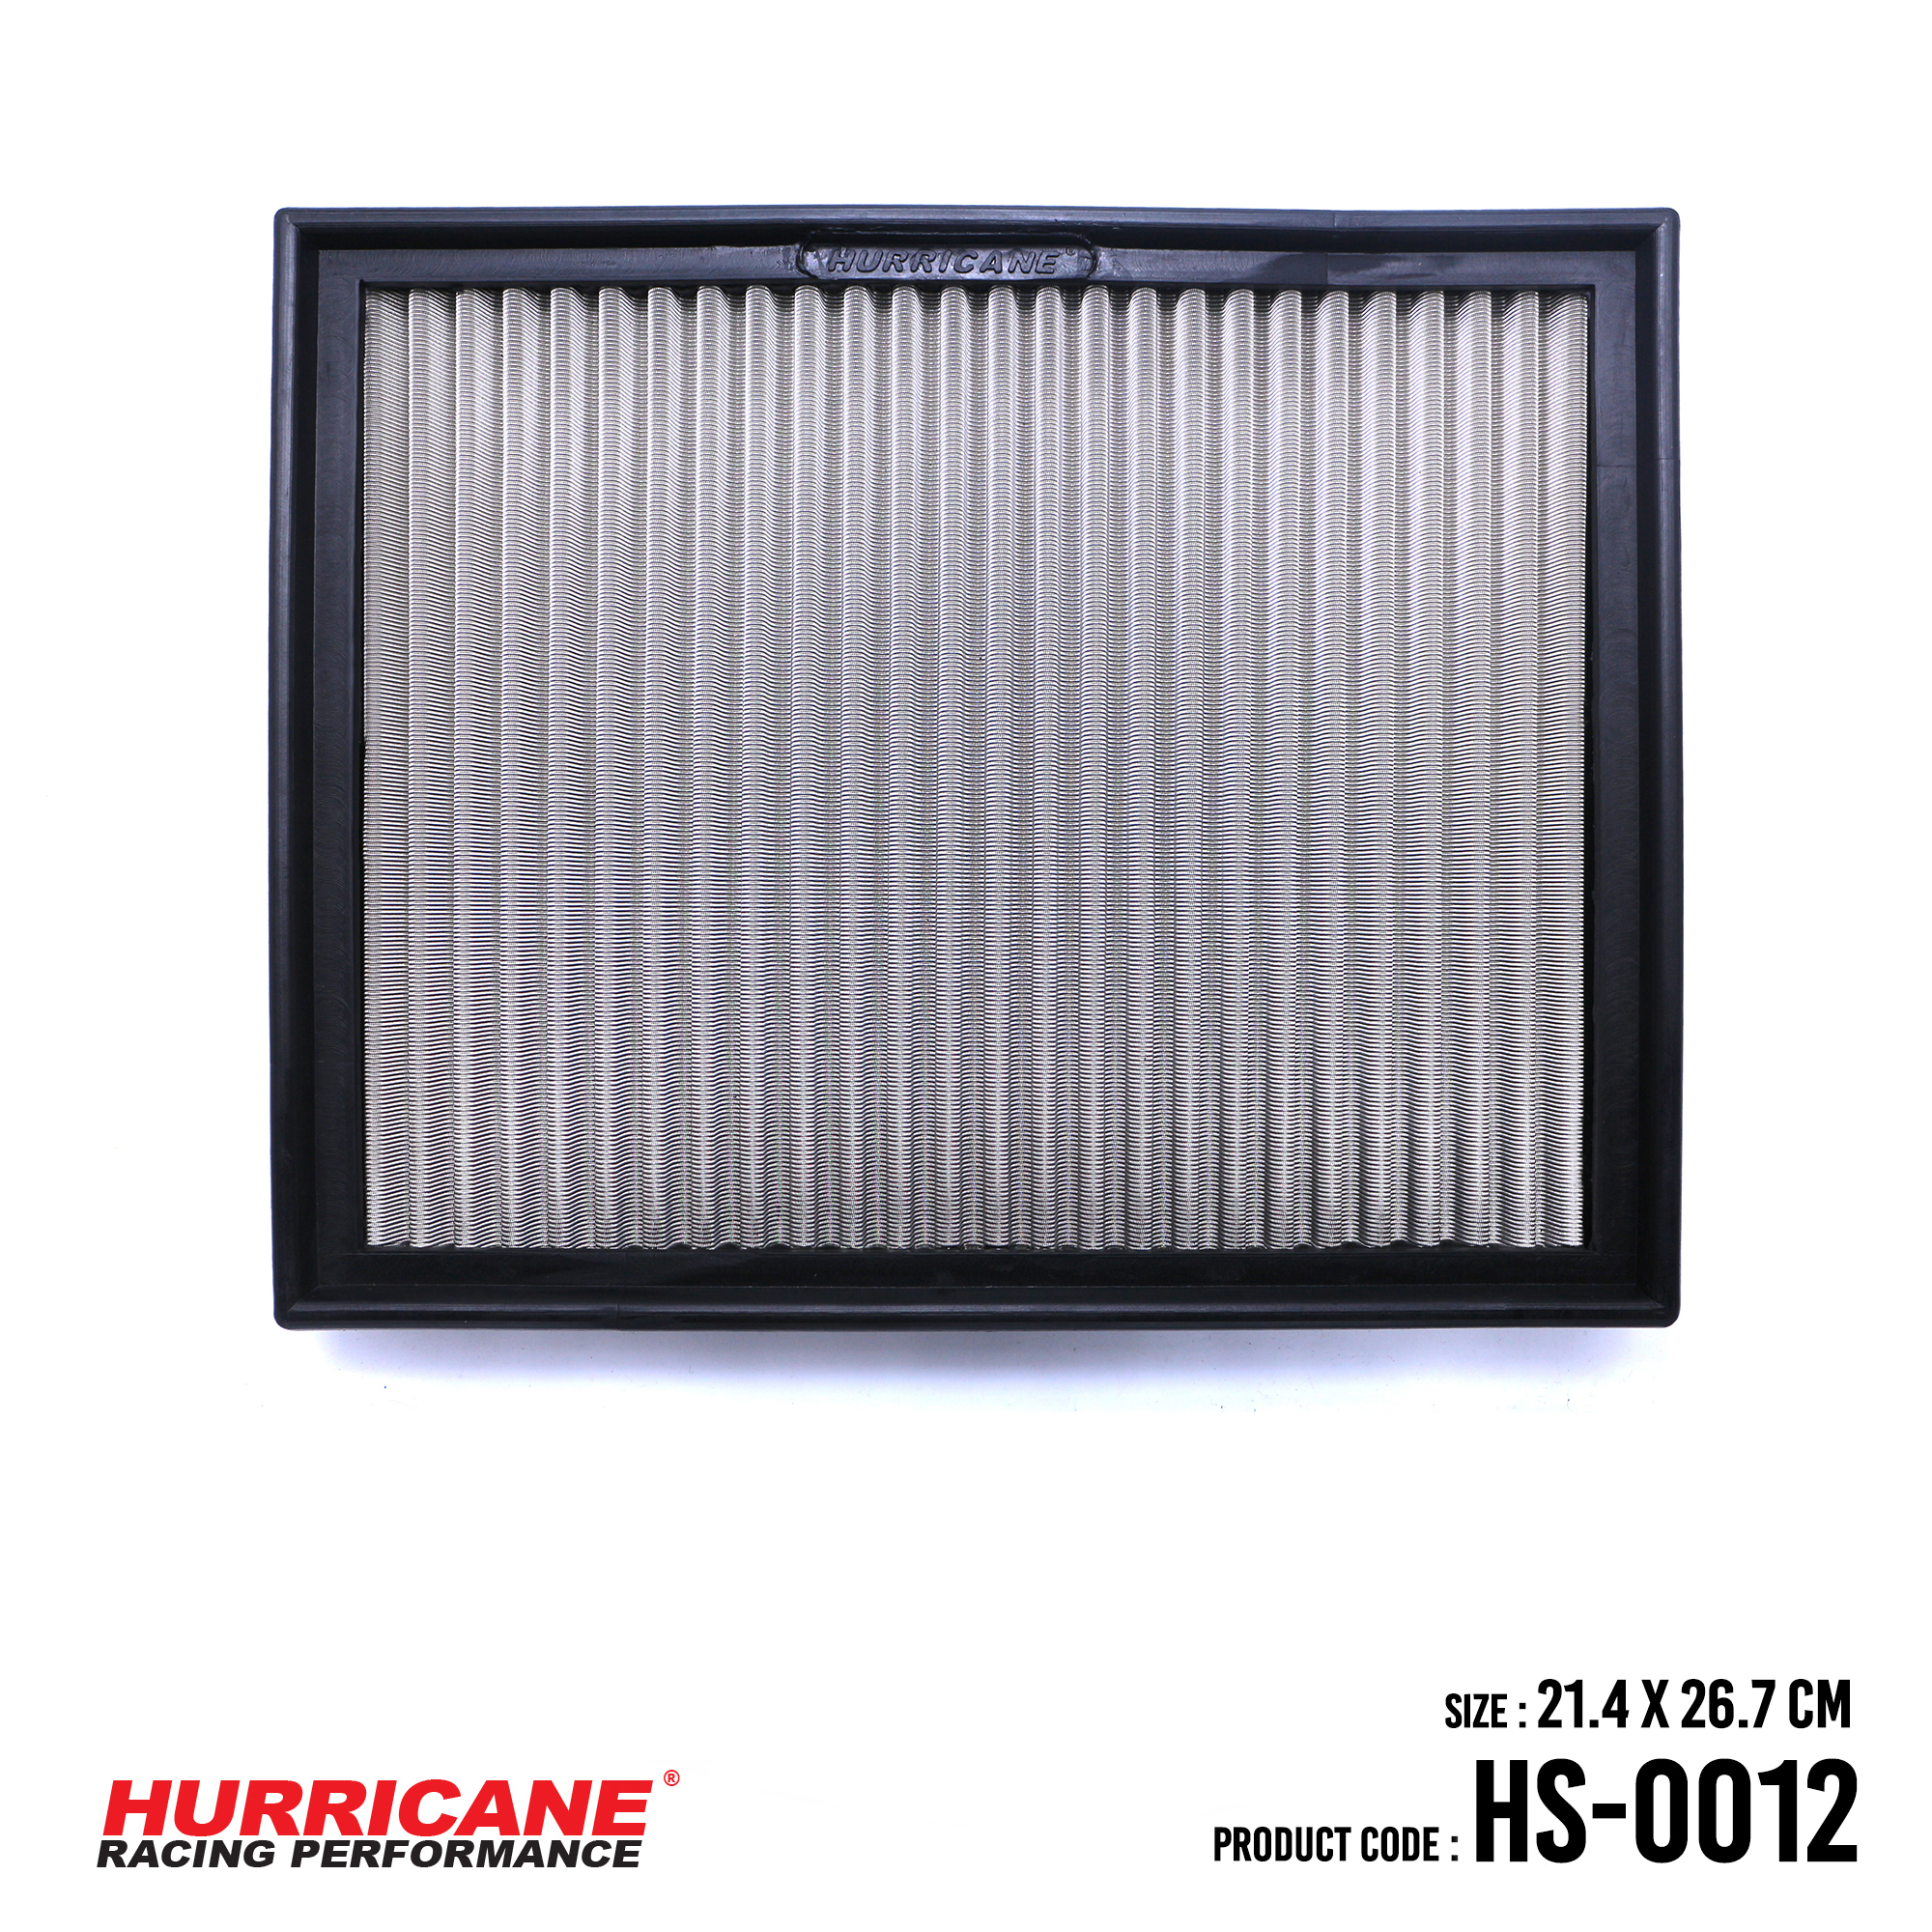 HURRICANE STAINLESS STEEL AIR FILTER FOR HS-0012 AudiSeat